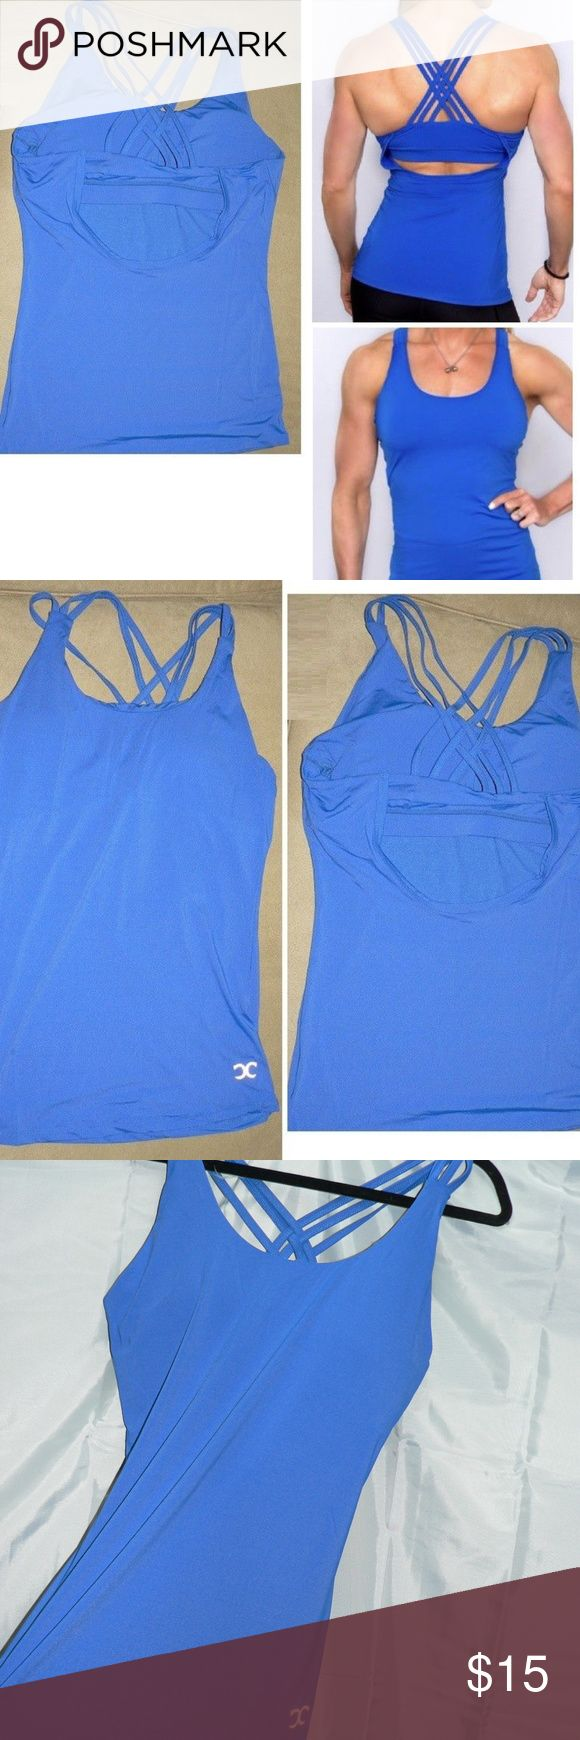 """New!Empowering YOGA Strappy Top Tank Sz LG Pro Run **NEW** Empowering  ATHLETIC Switchback Running, Crossfit, Gym,Athletic Top WOMENS Size Large -Dri-fit /Moisture Wick -Check out the Strappy Back on the Royal Blue-Padded CUPS which is nice --Measurements: Approx 34-36"""" Around bust/waist/chest  -Will Absolutely Stretch....... and 23"""" Length -Never WORN Empowering Tops Tank Tops"""